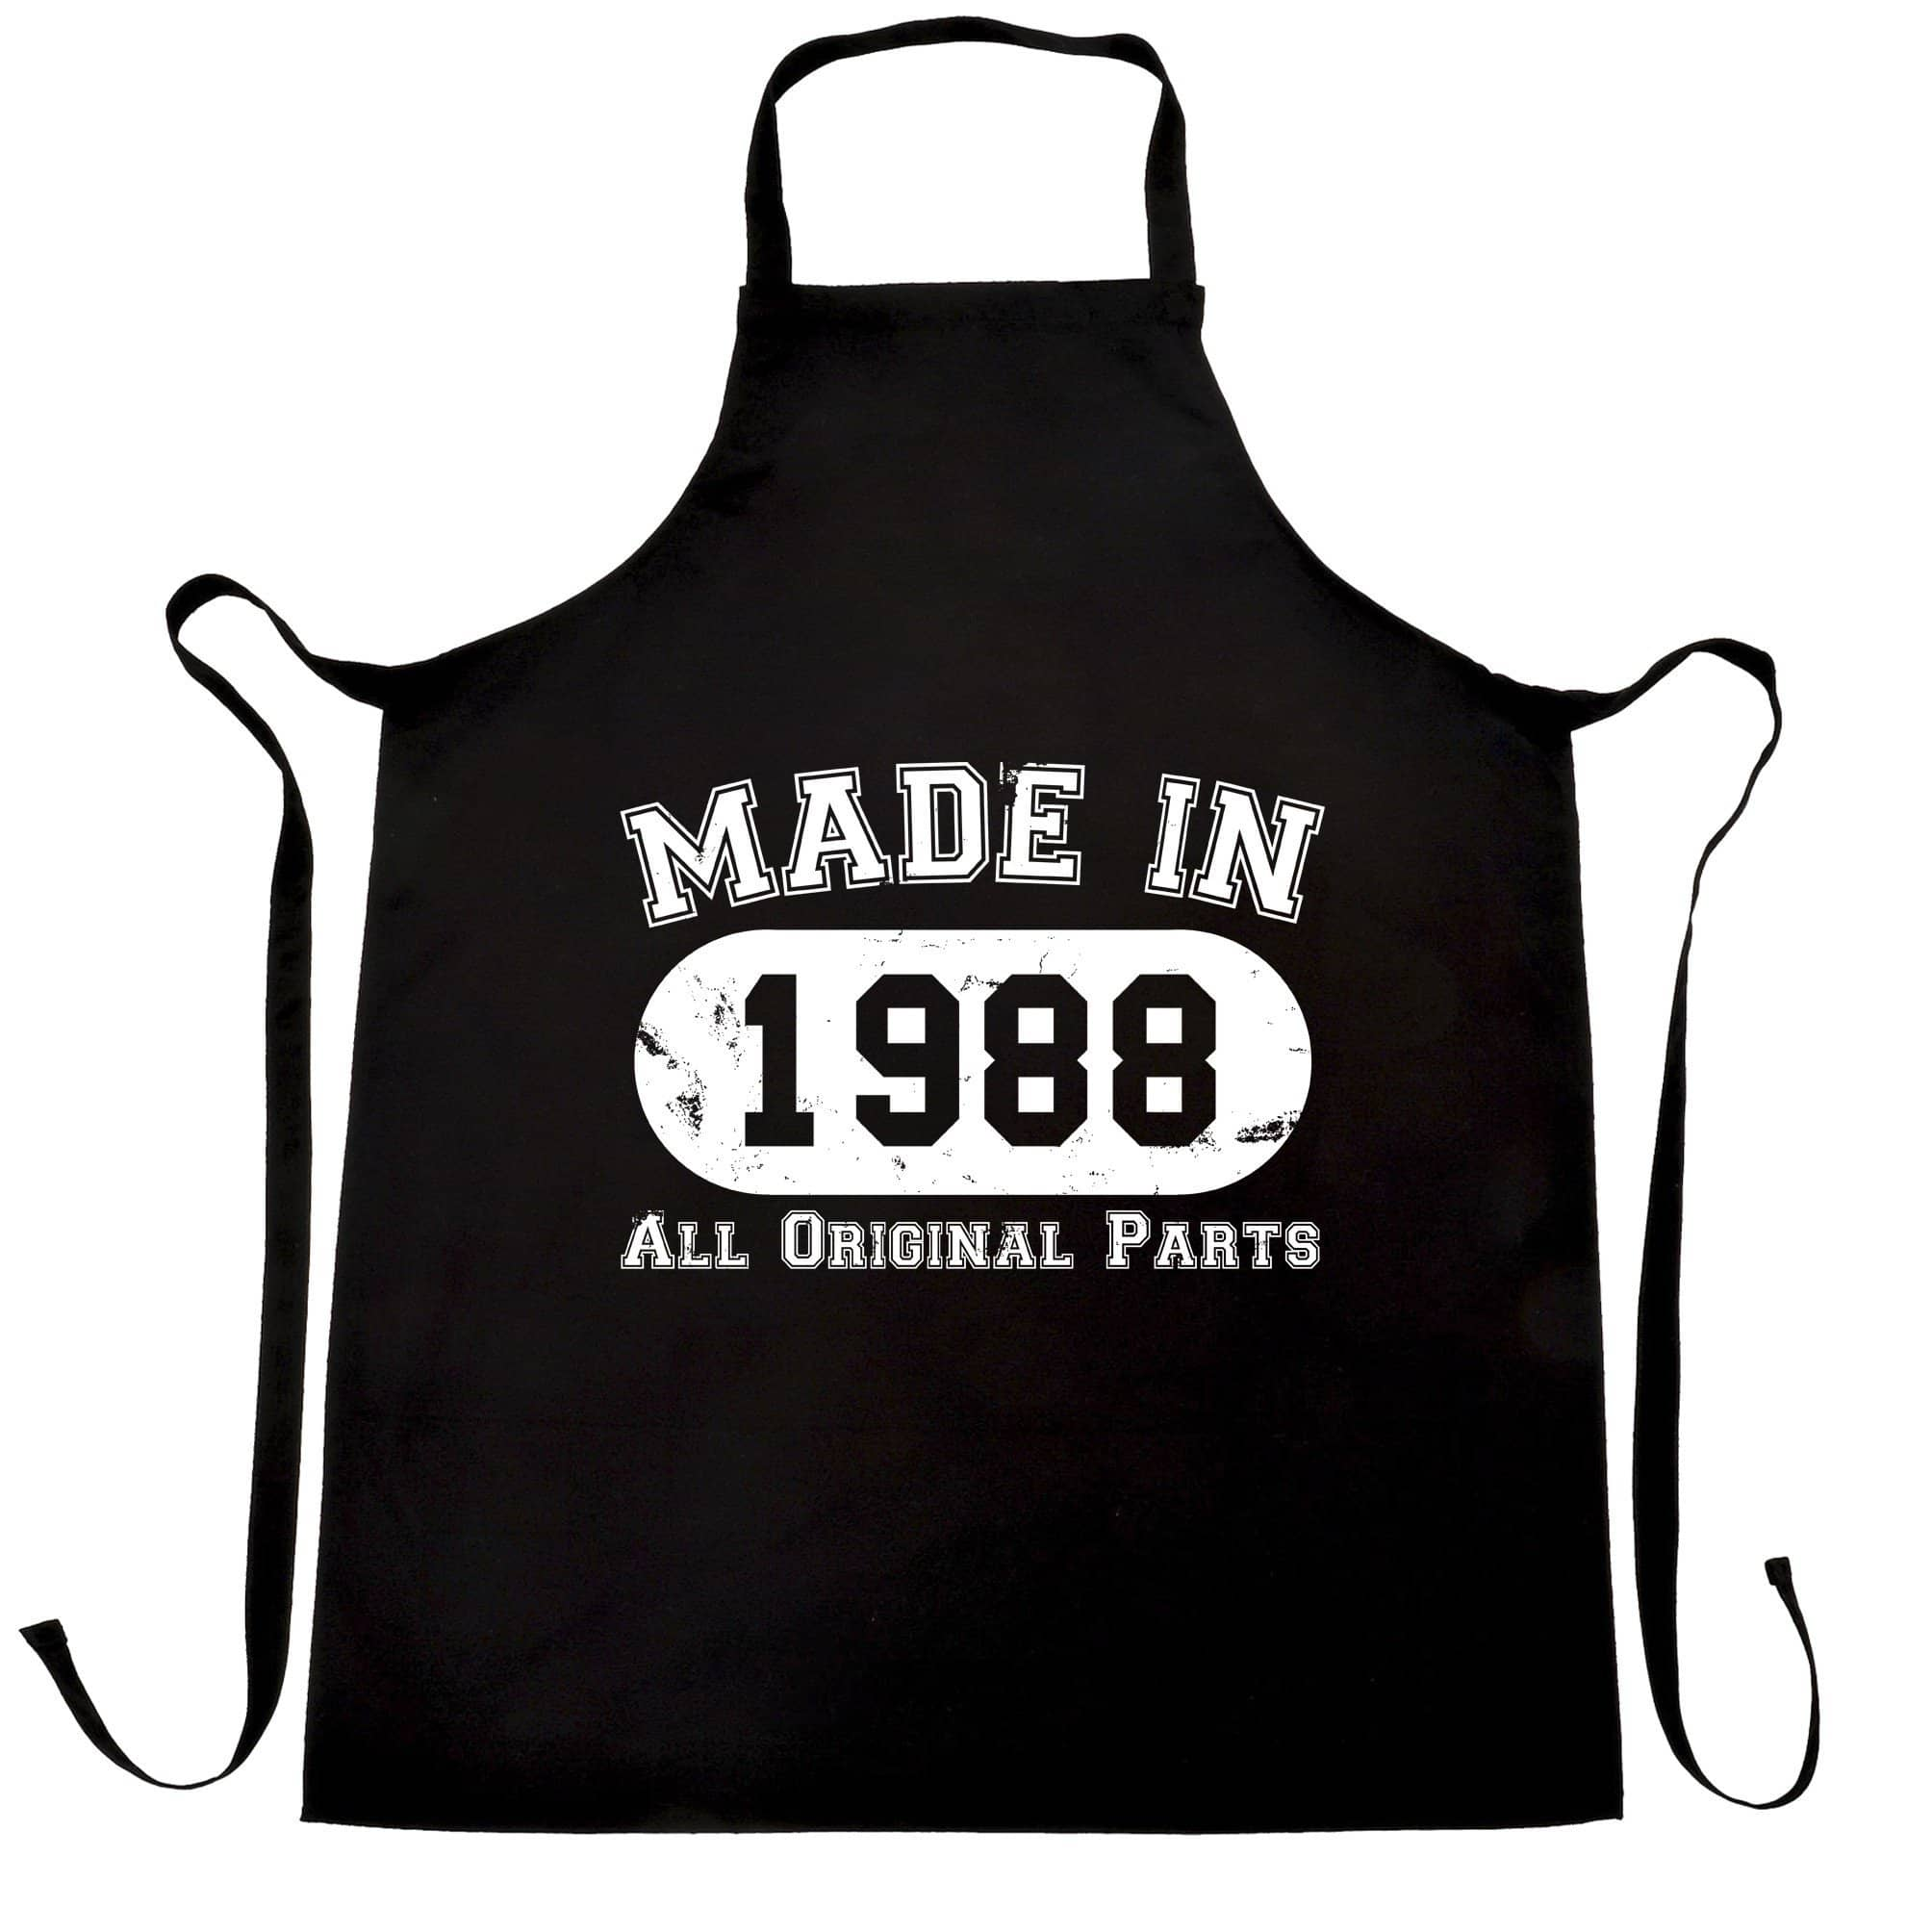 Made in 1988 All Original Parts Apron [Distressed]